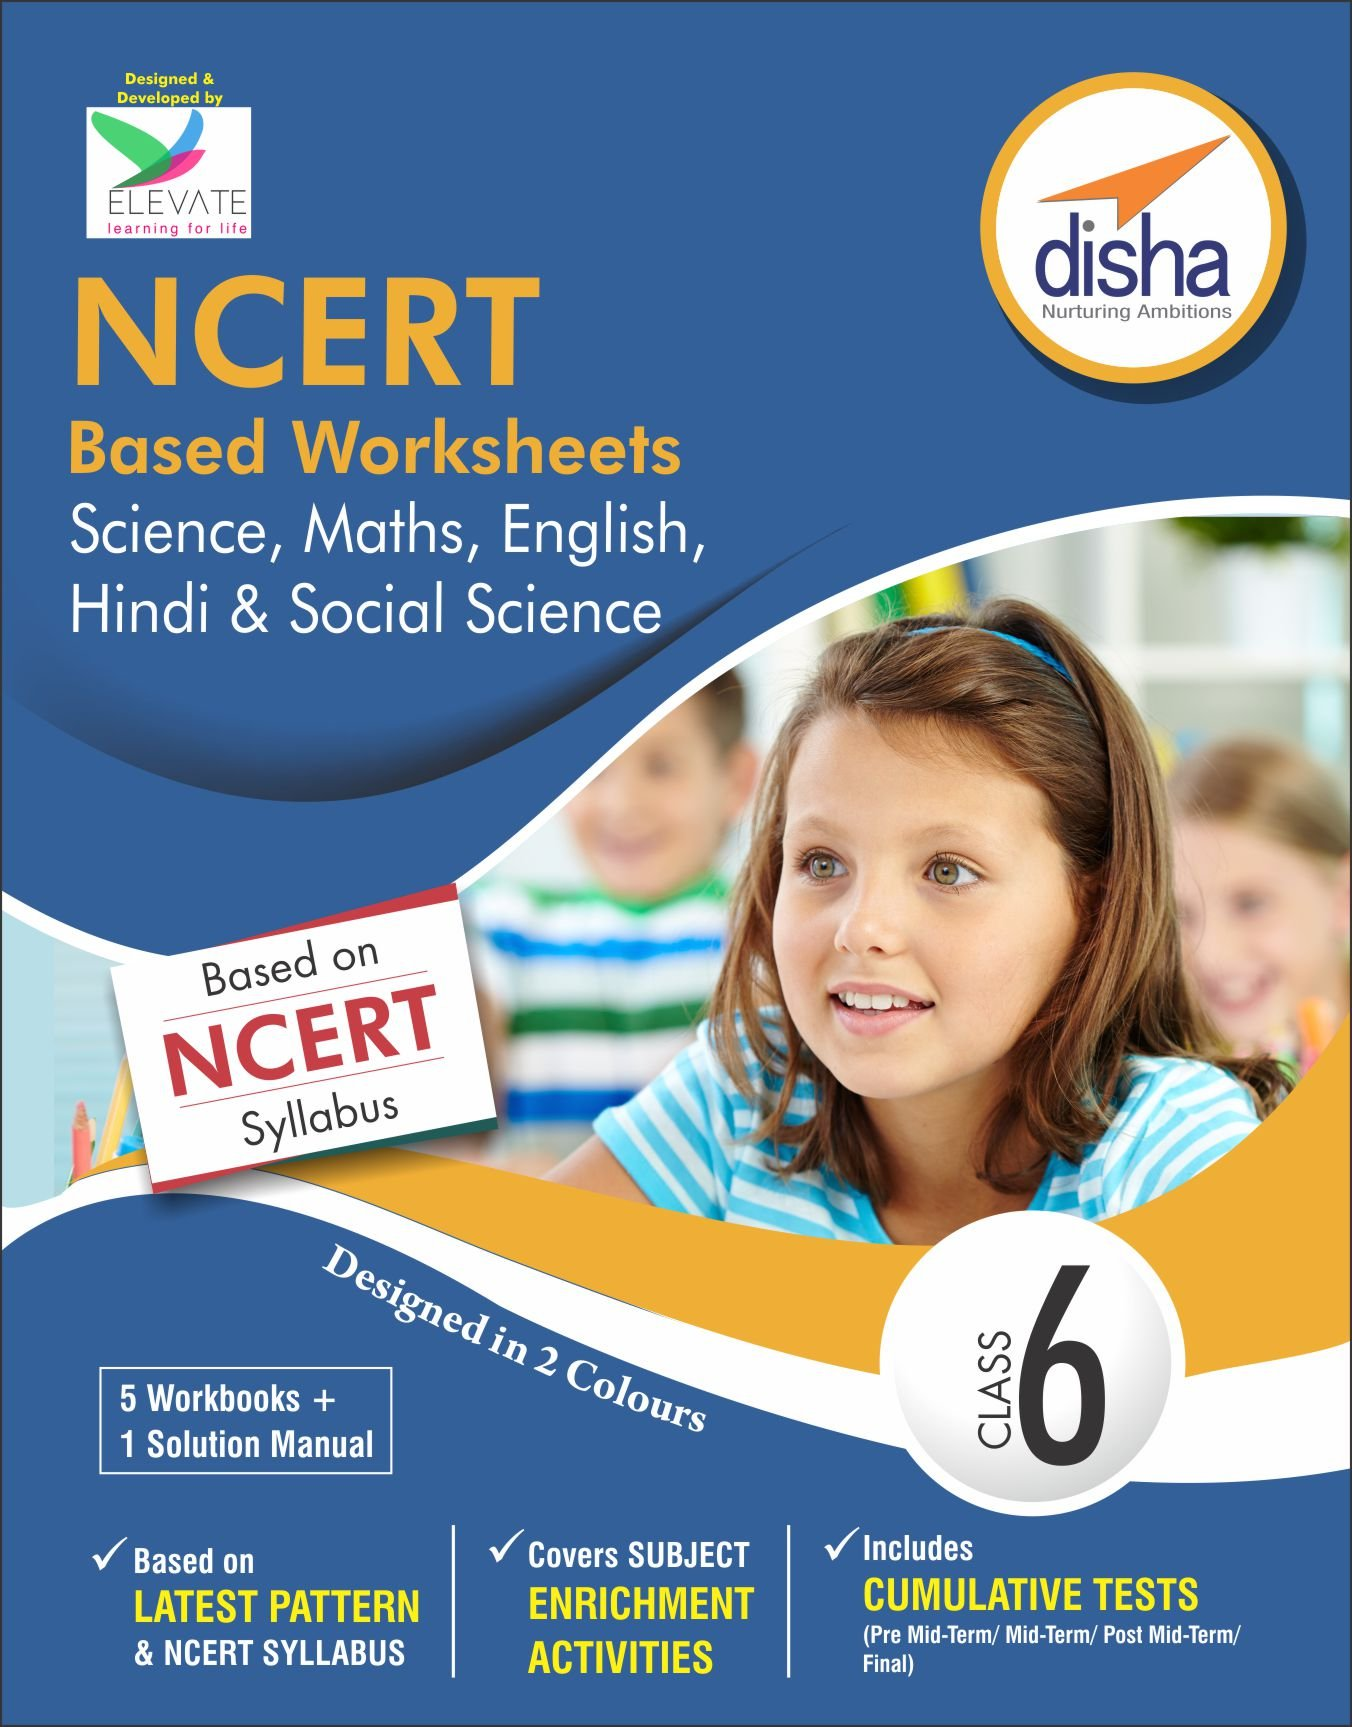 NCERT Based Worksheets for Class 6 - Science, Maths, English, Hindi ...